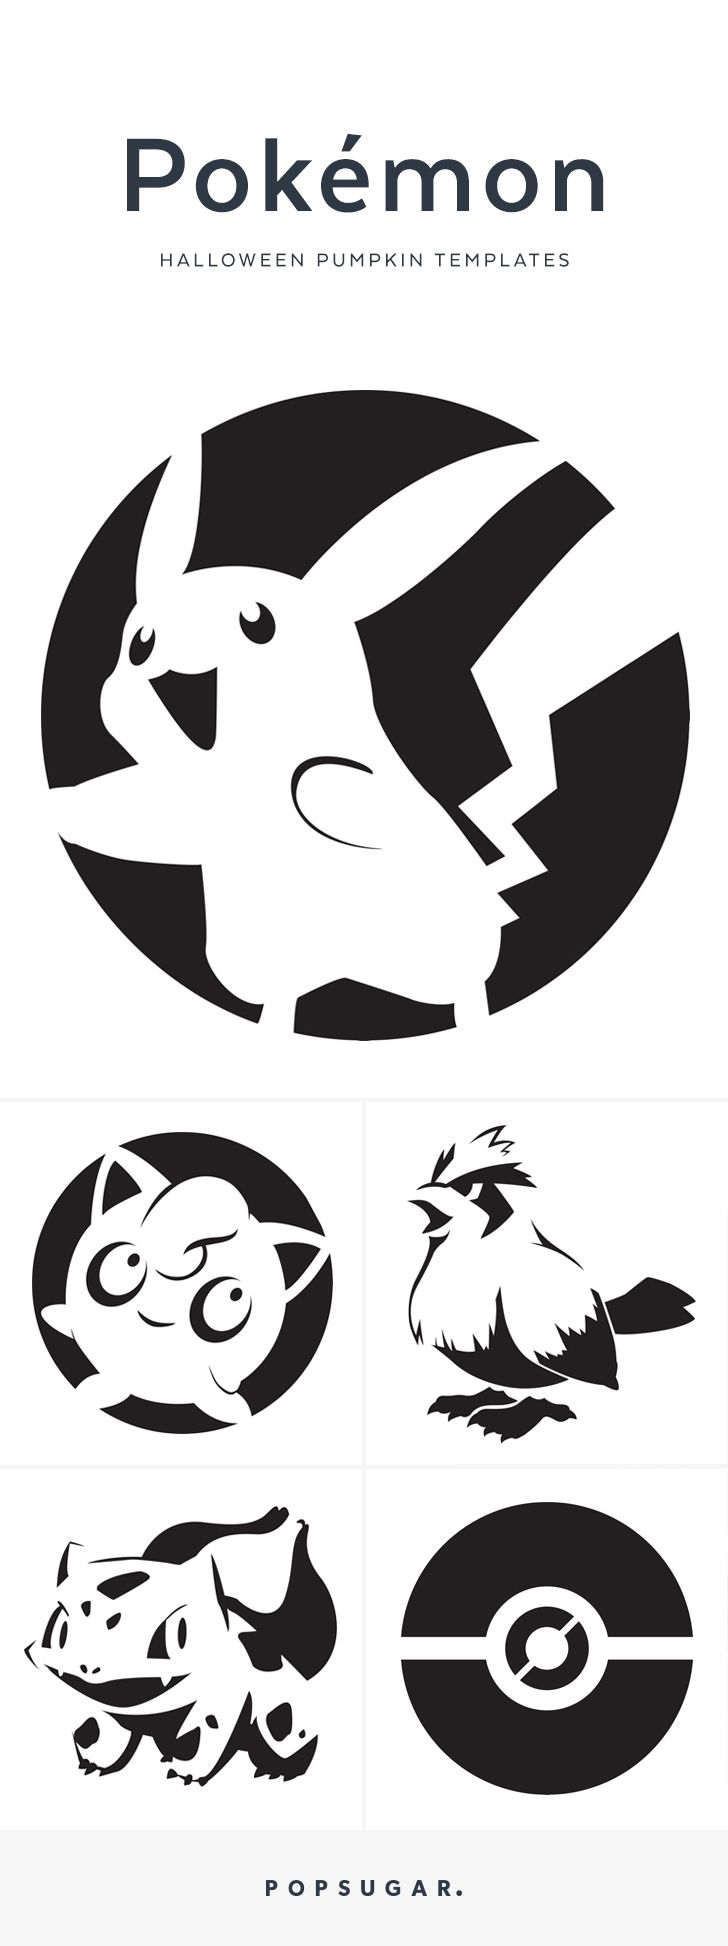 Create the Pokémon Pumpkins of Your Childhood Dreams With These Free ...